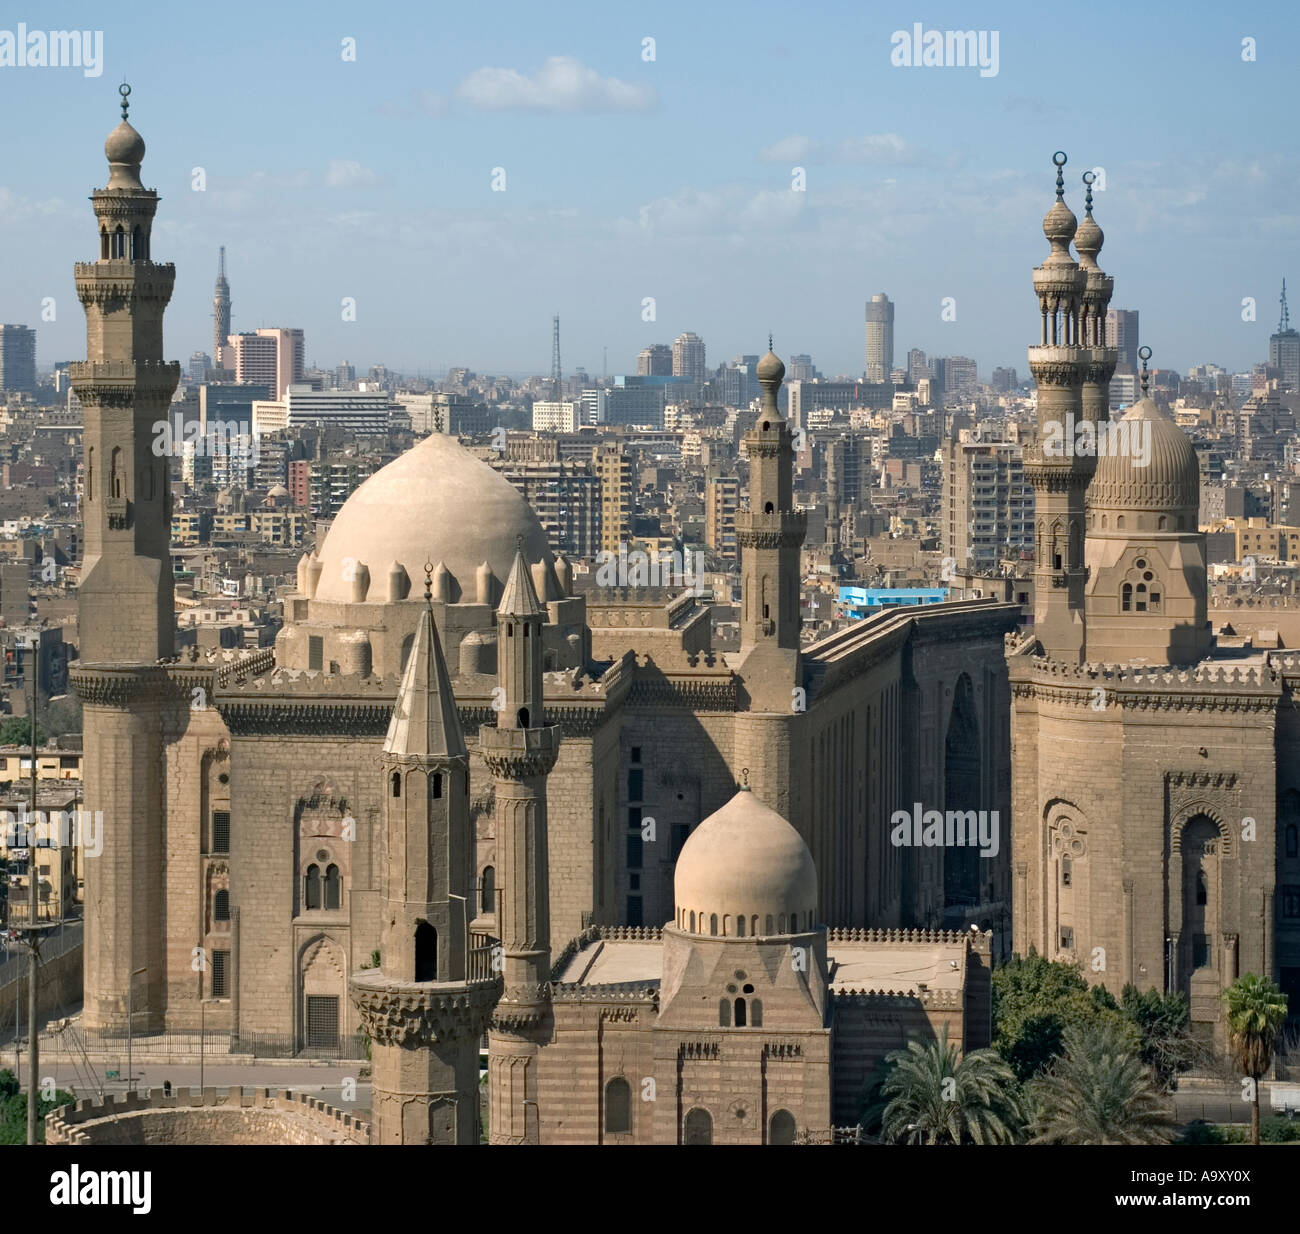 le-caire-monuments - Photo